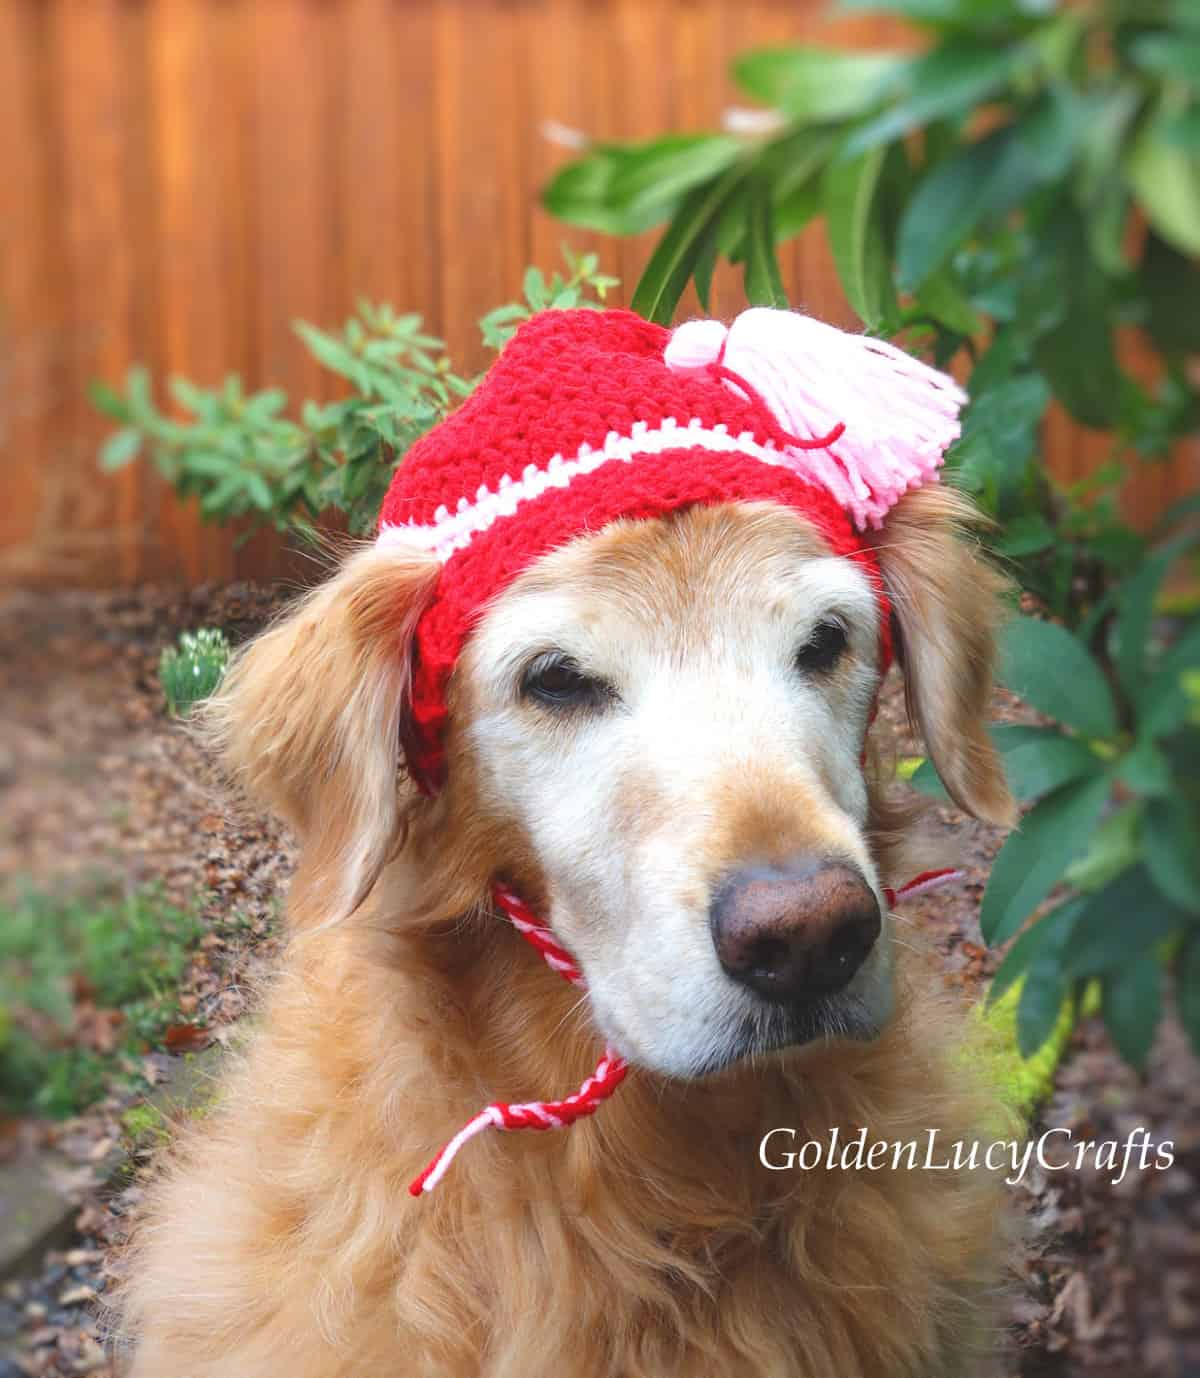 Golden retriever wearing red crocheted hat.